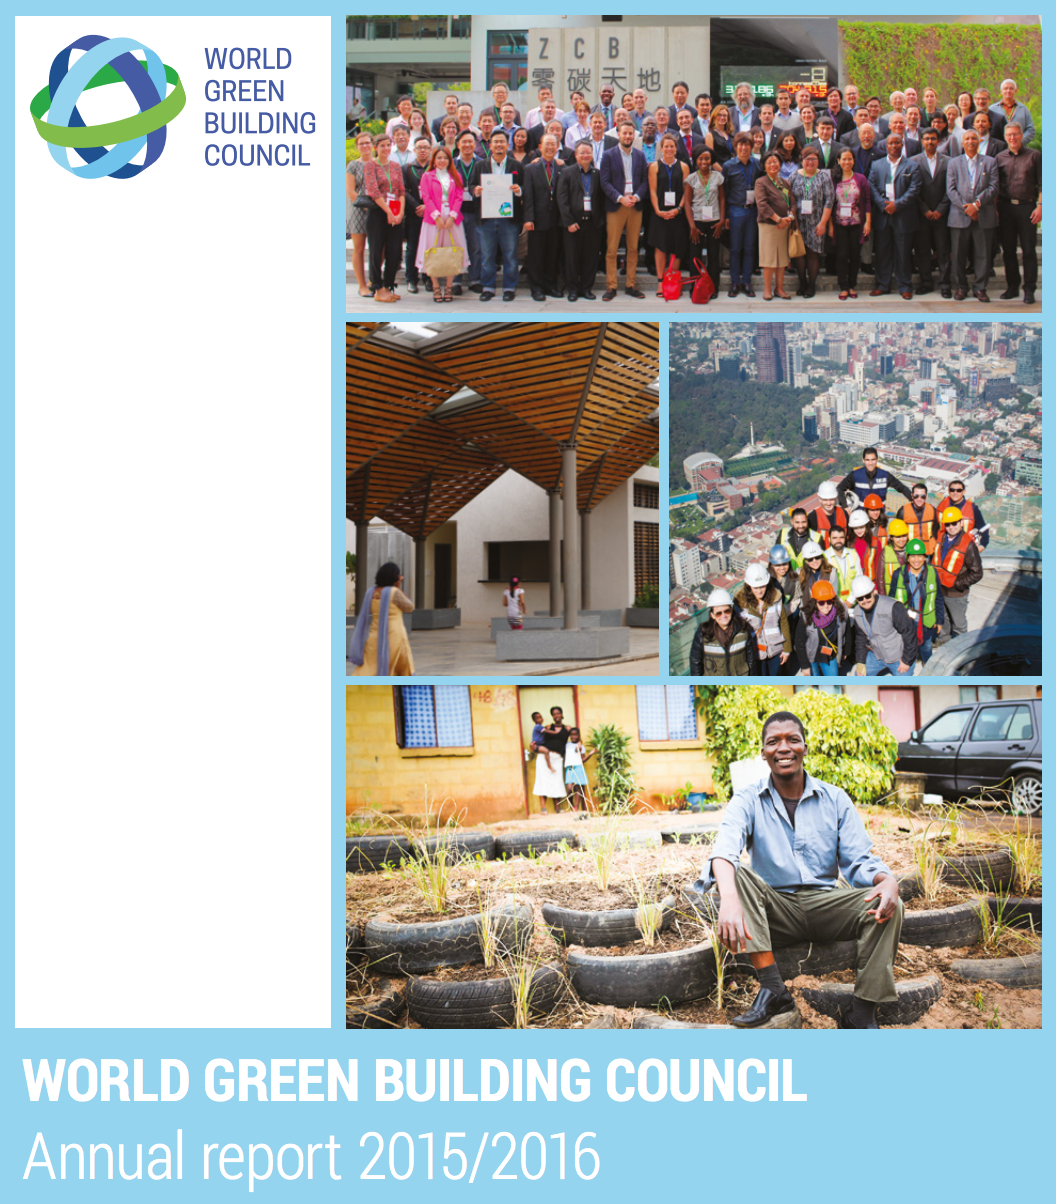 Worldgbc Annual Report 2015 2016 World Green Building Council